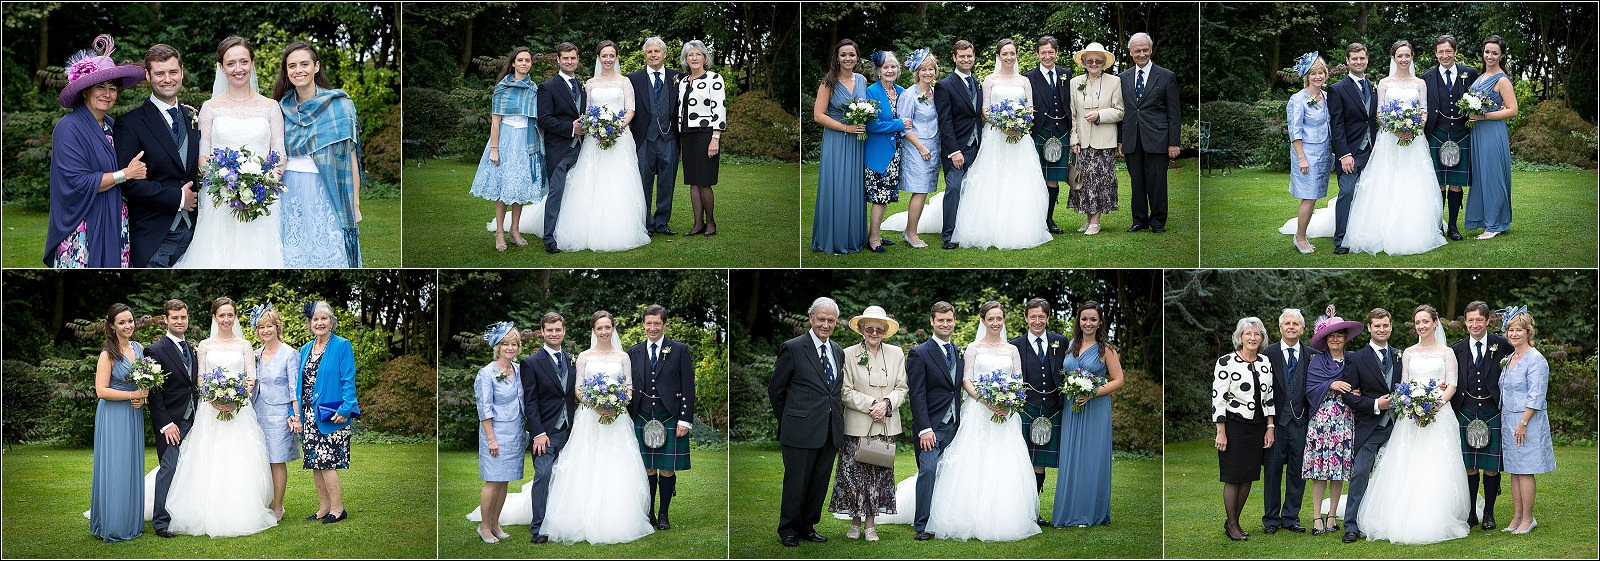 wedding group photos_0023